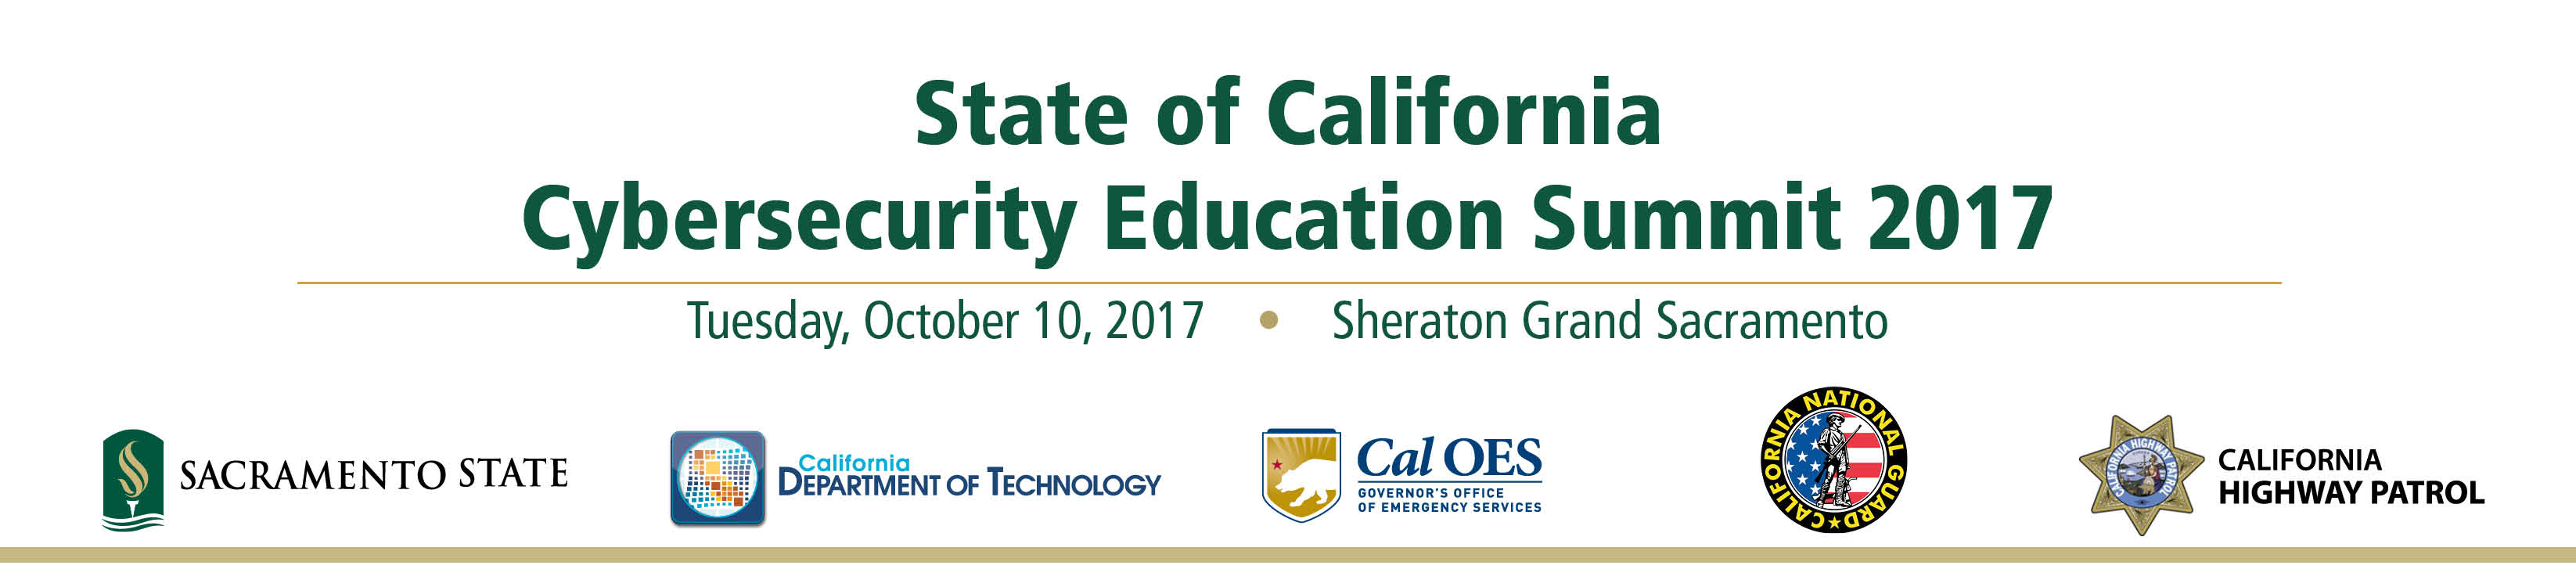 State of California Cybersecurity Education Summit 2017